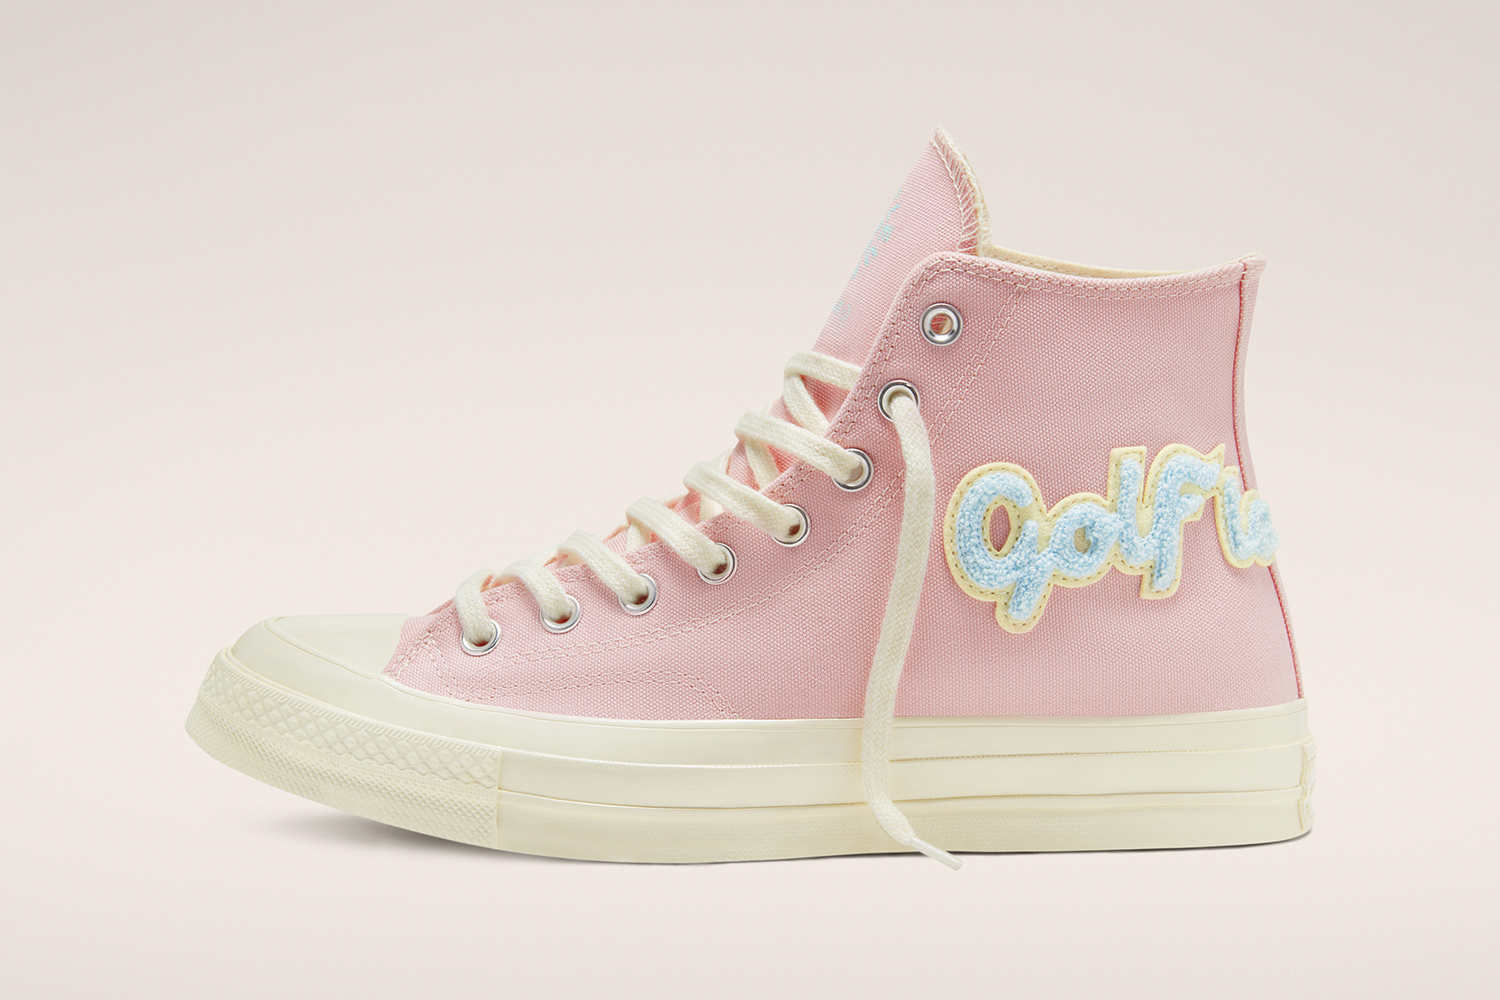 GOLF le FLEUR* Converse GLF Gianno Ox Chenille Chuck 70 Release Info Date camp flog gnaw Pink Blue Patch